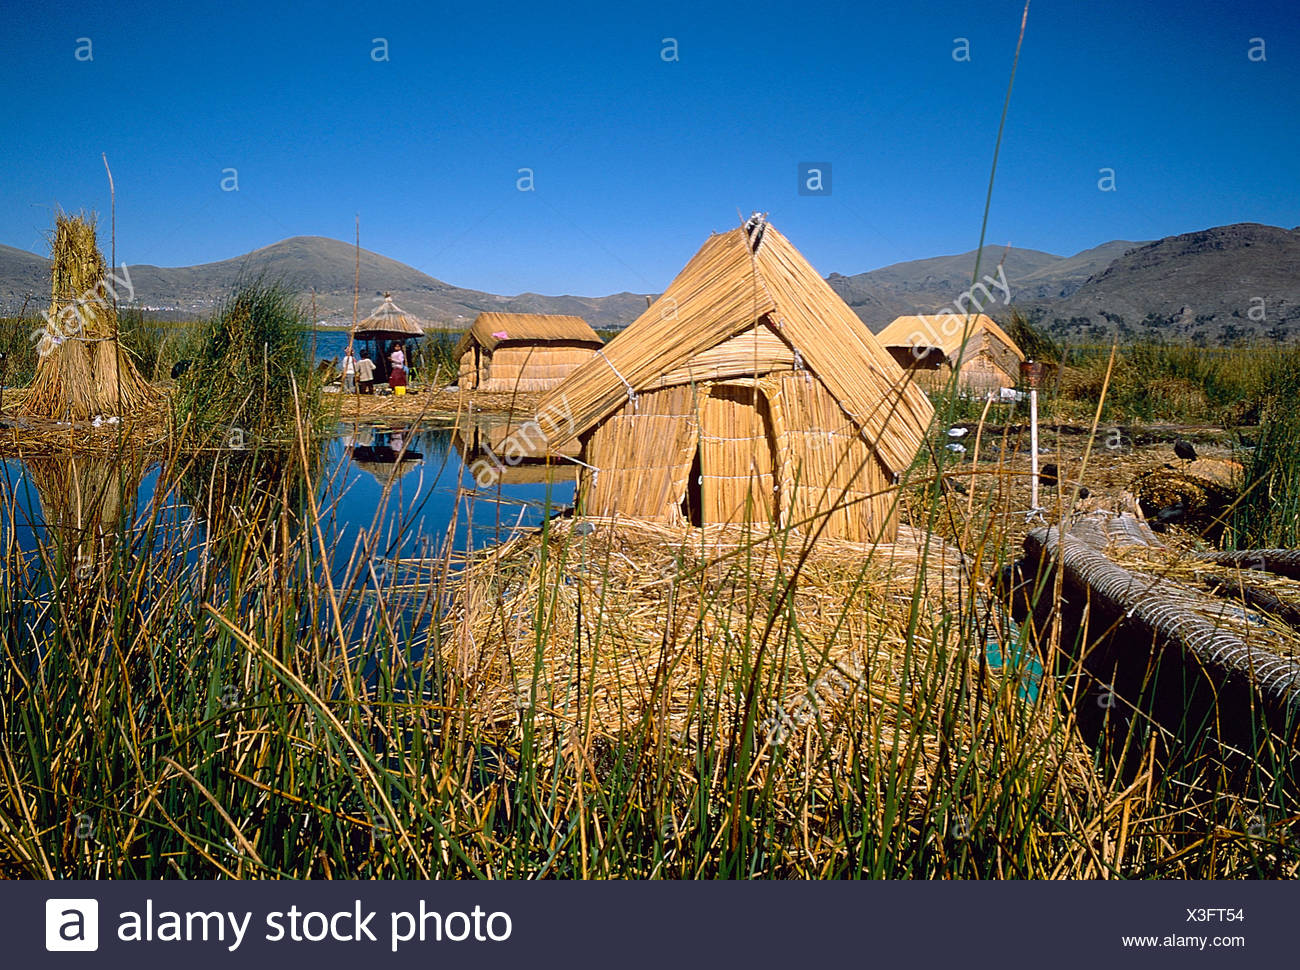 Urus, reed islands at the Titicacasee, Peru - Stock Image